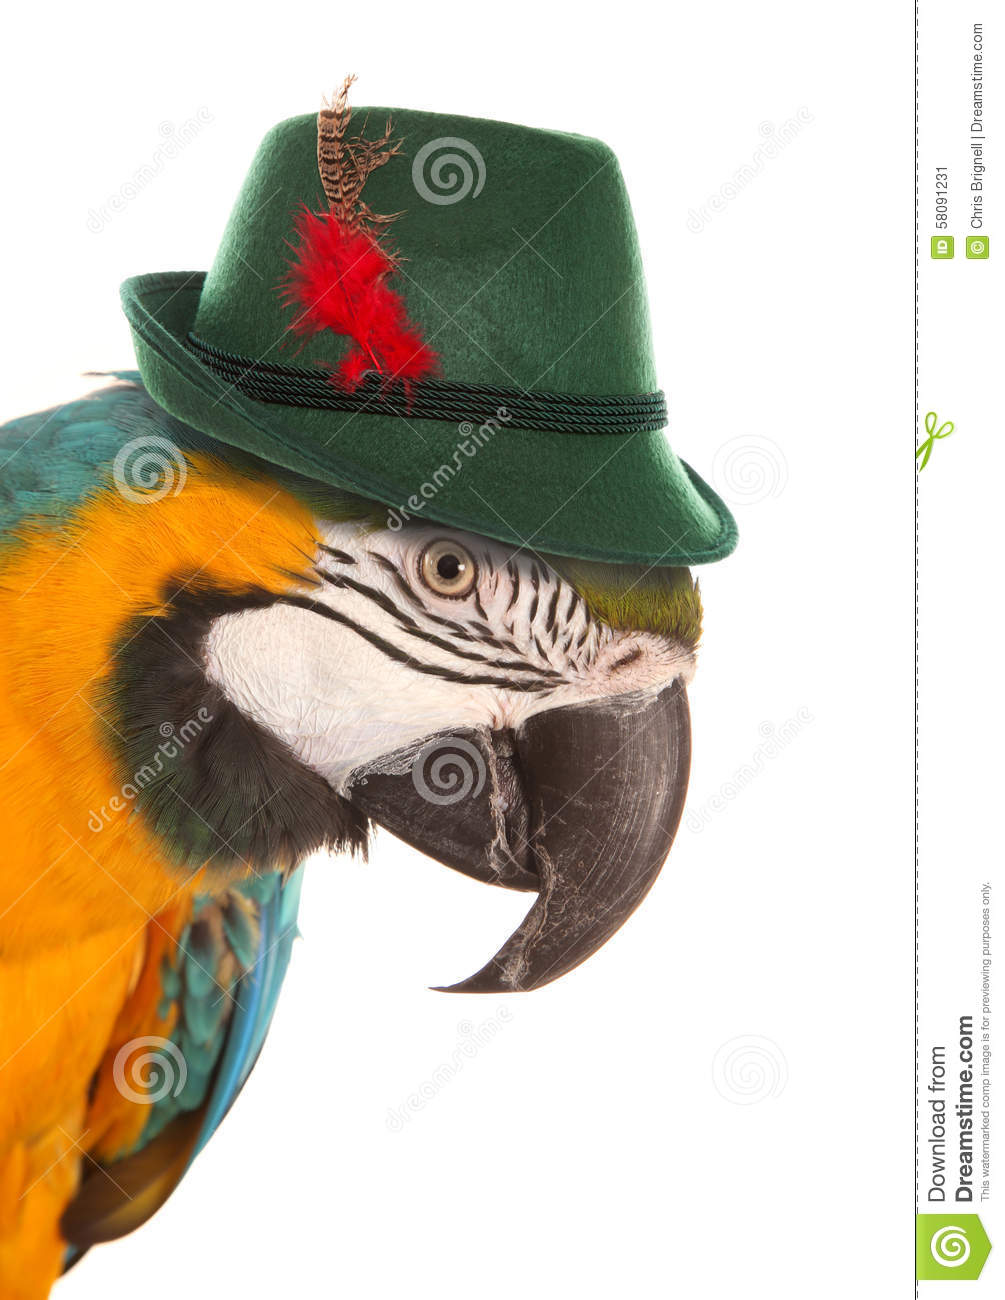 Macaw parrot wearing a bavarian hat